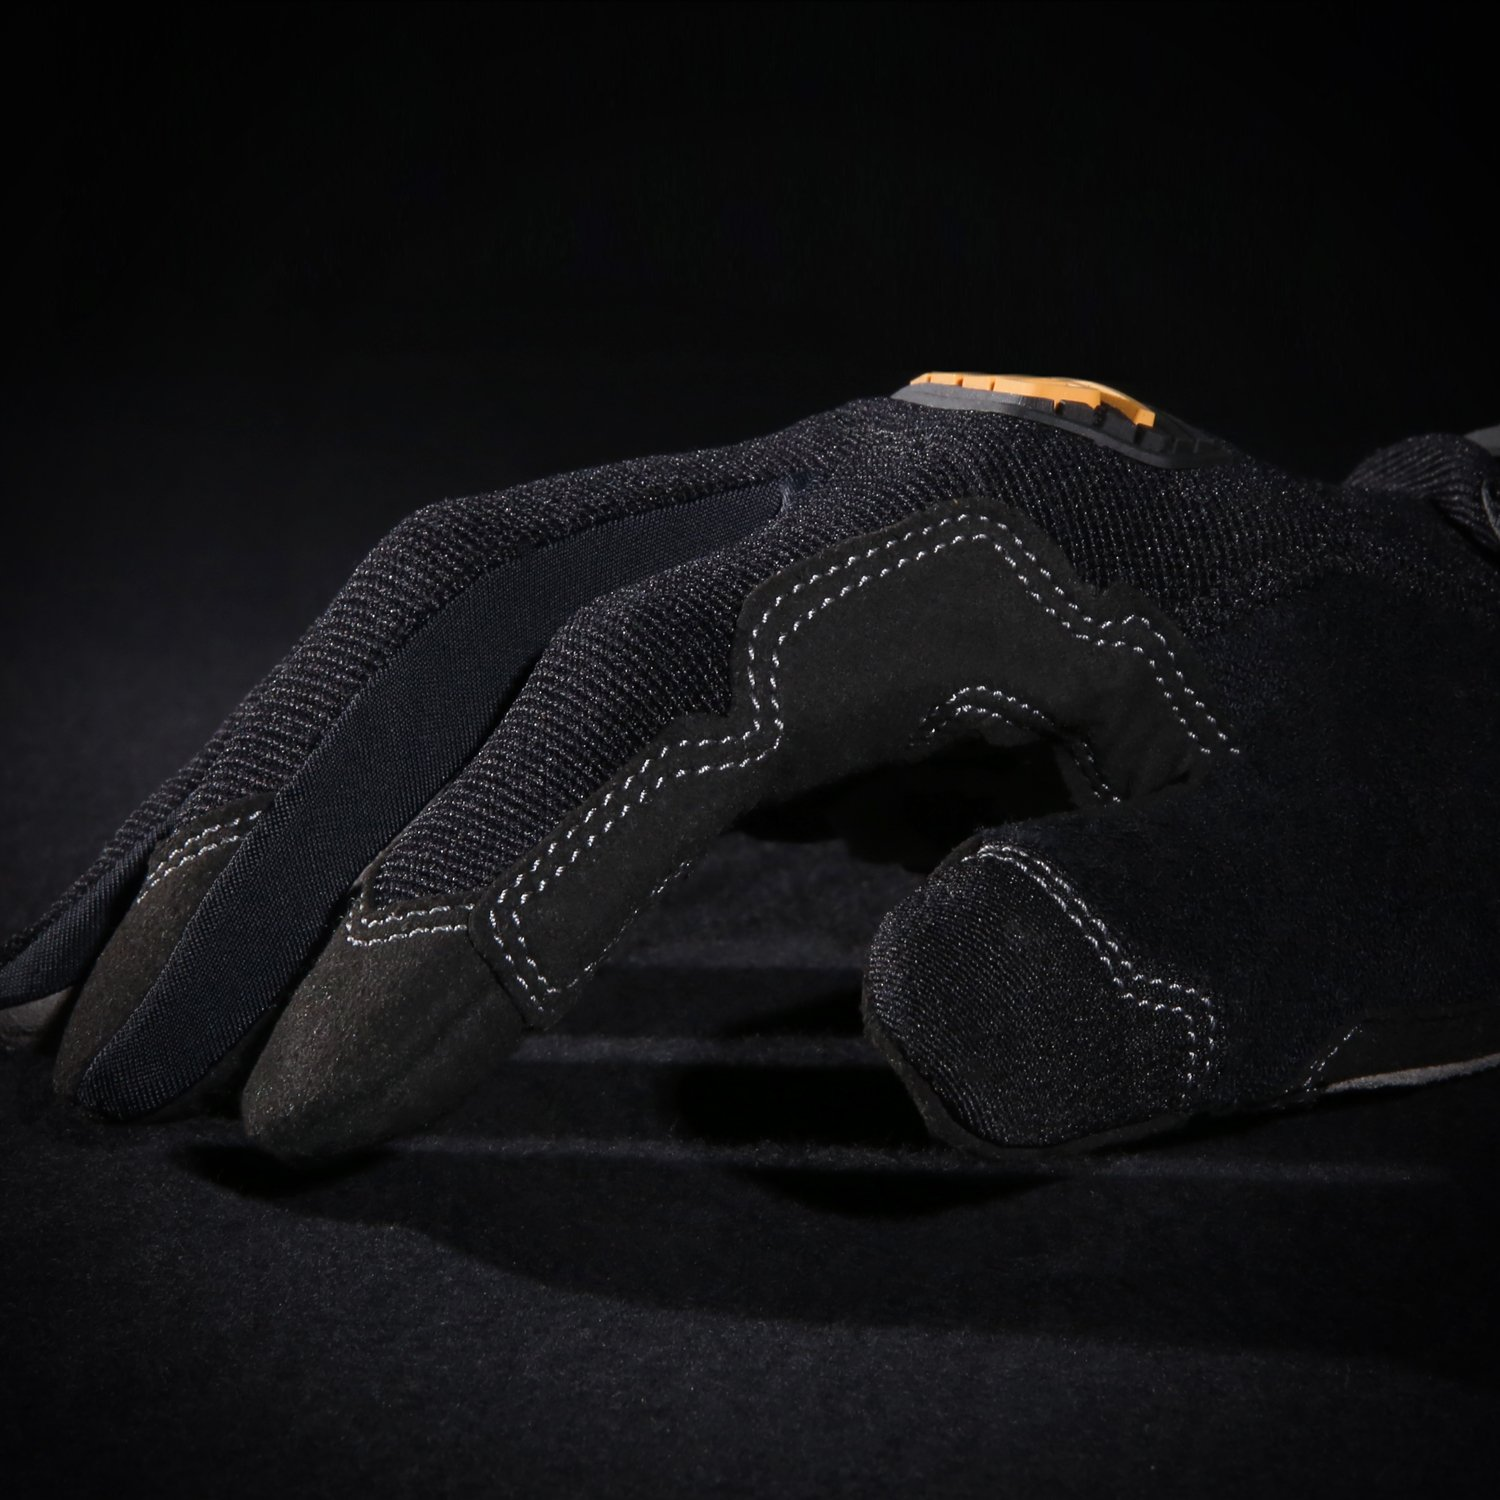 Ironclad General Utility Work Gloves GUG-04-L, Large by Ironclad (Image #8)